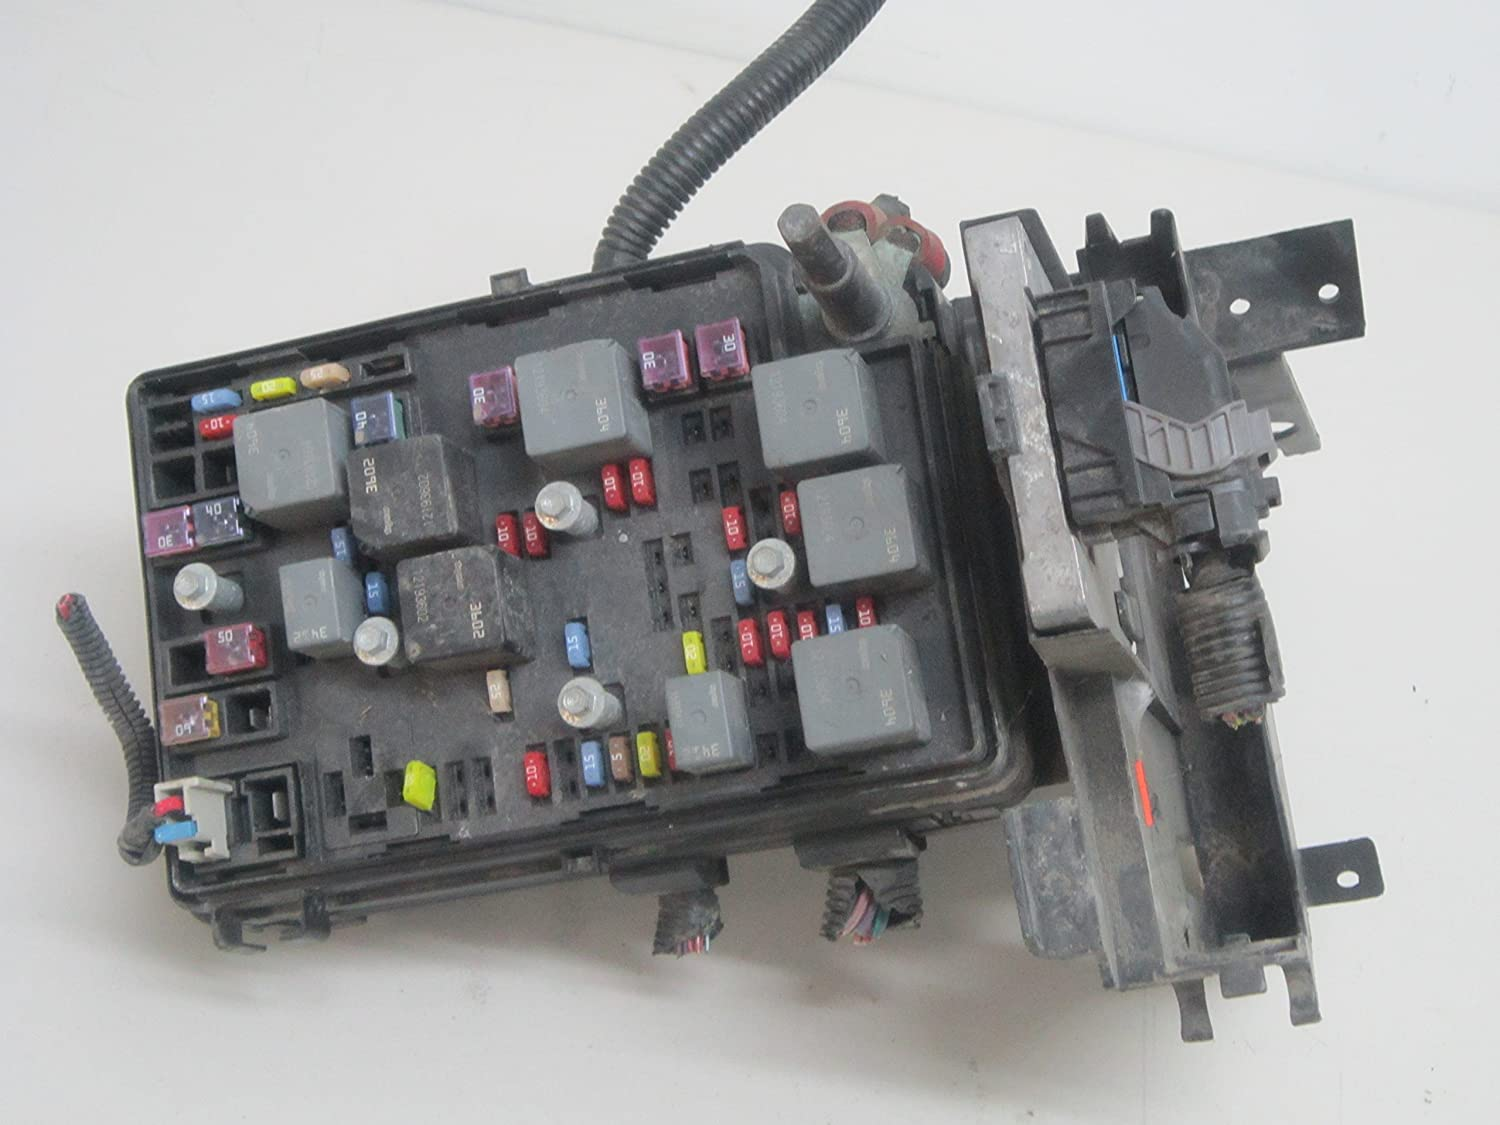 Amazon.com: 05 06 07 08 09 10 CHEVY COBALT FUSE BOX 15269046: Car  Electronics